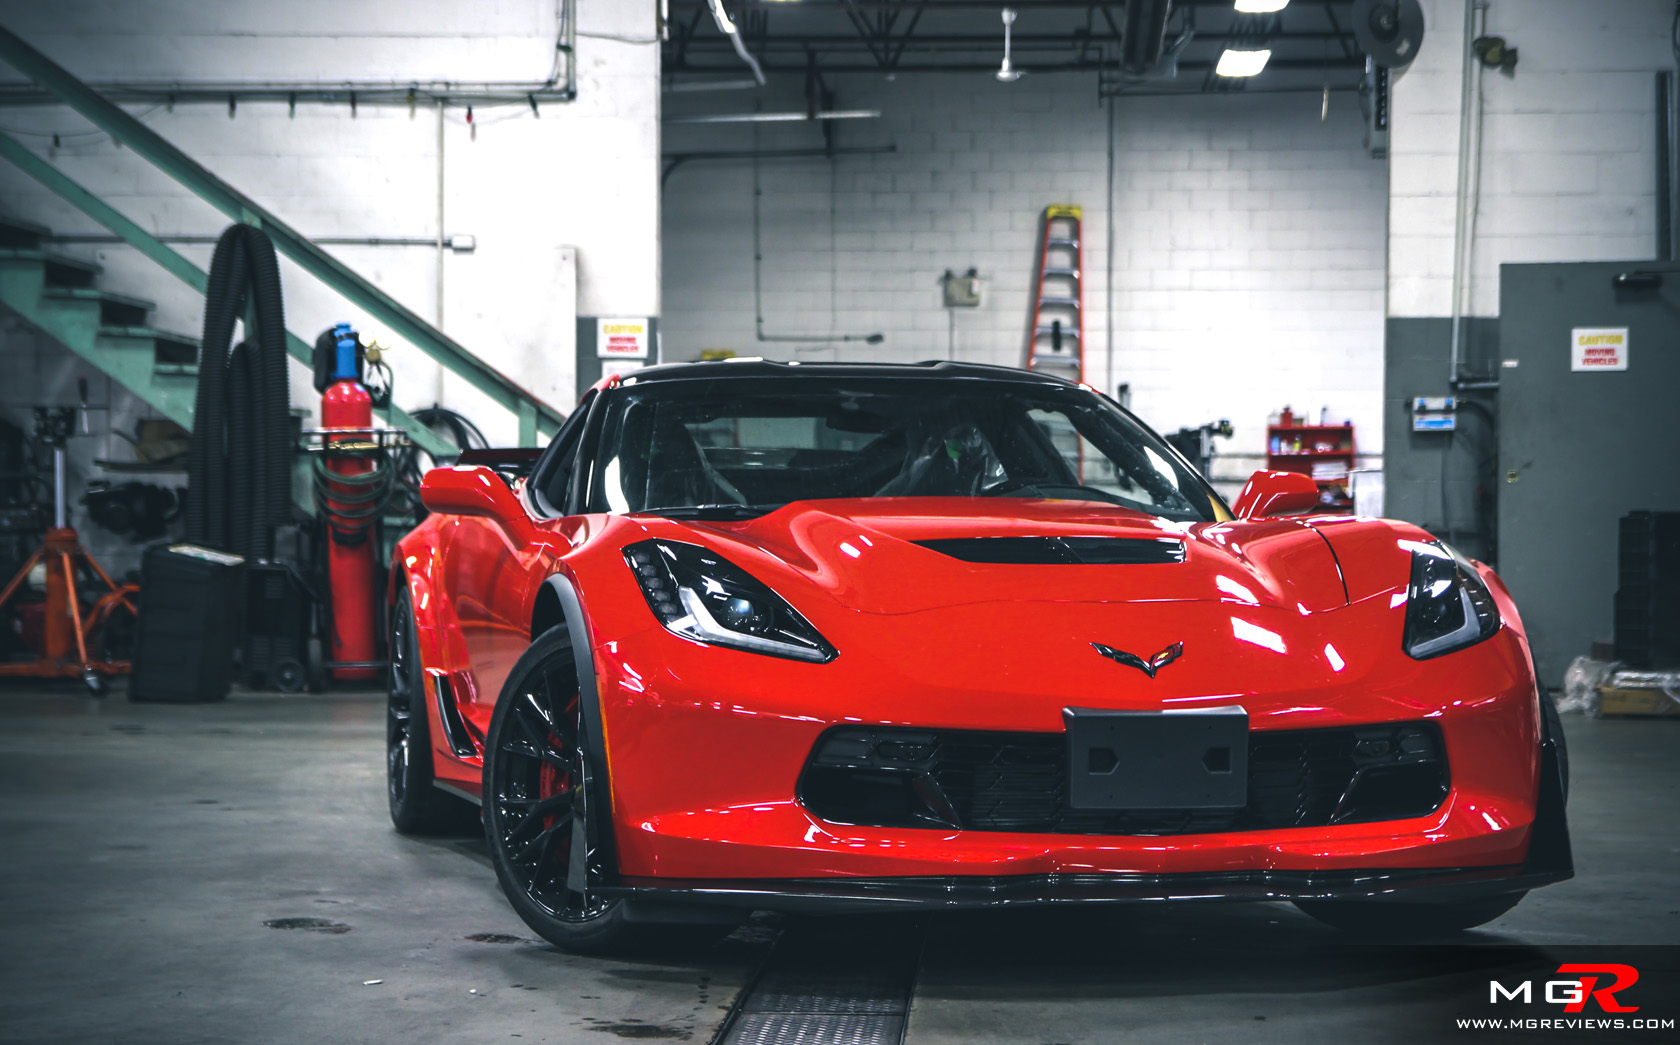 Photos: 2017 Chevrolet Corvette Z06 – M.G.Reviews